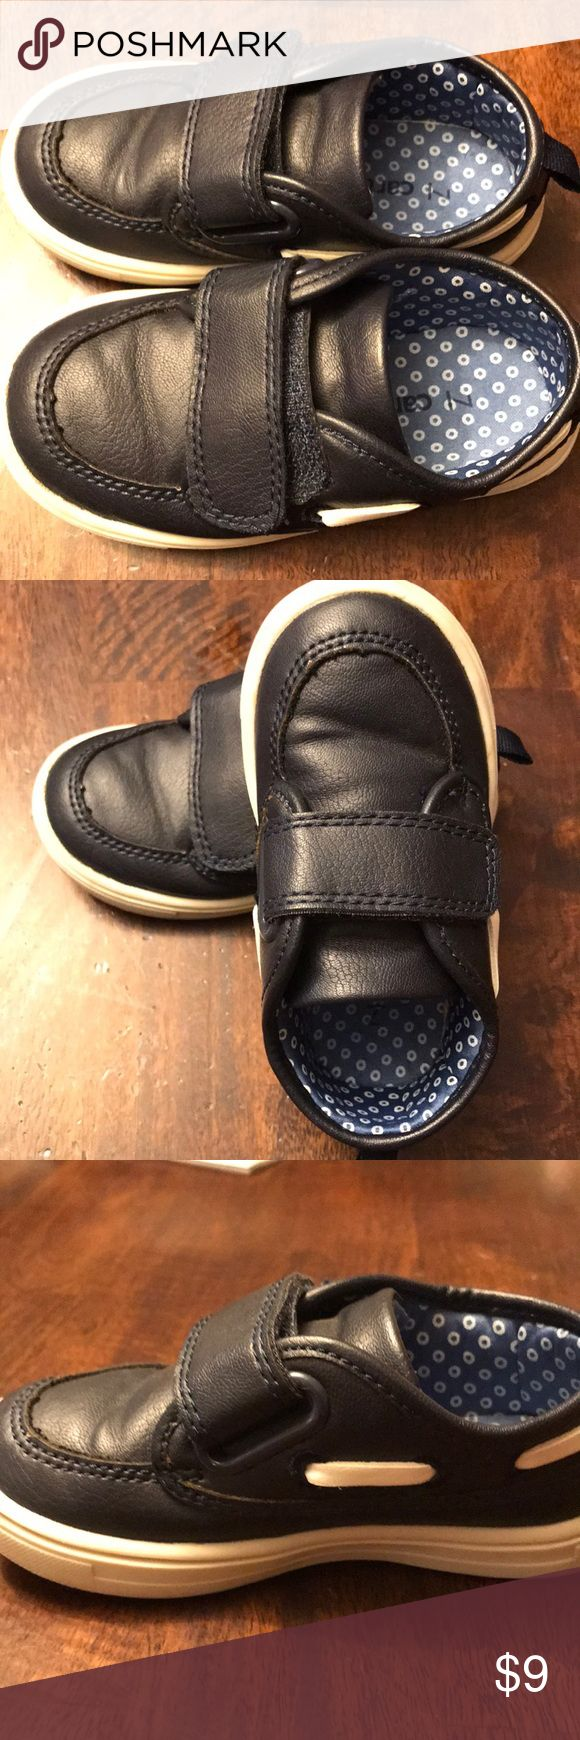 Carter's Size 7 Toddler Boy Dress Shoes Dark Navy dress shoes with white trim. Worn 2 times, bottoms have a few scuffs but other than that in perfect condition! Carter's Shoes Dress Shoes